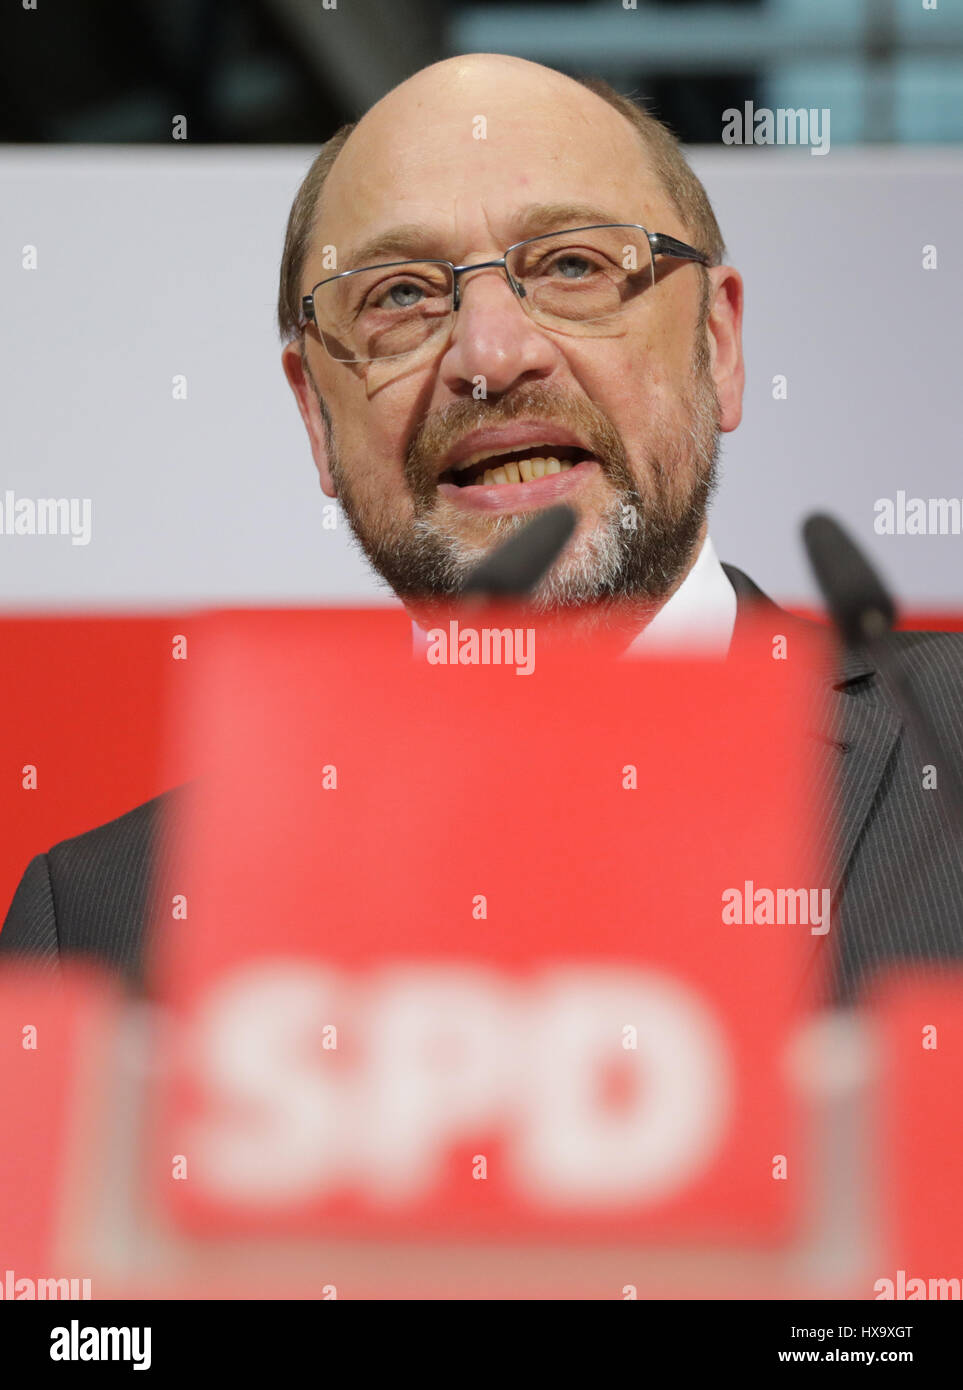 Berlin, Germany. 26th Mar, 2017. Martin Schulz, chairman and chancellor candidate of Germany's Social Democratic Party (SPD), delivers remarks after the Saarland state elections, in Berlin, Germany, 26 March 2017. Photo: Kay Nietfeld/dpa/Alamy Live News Stock Photo